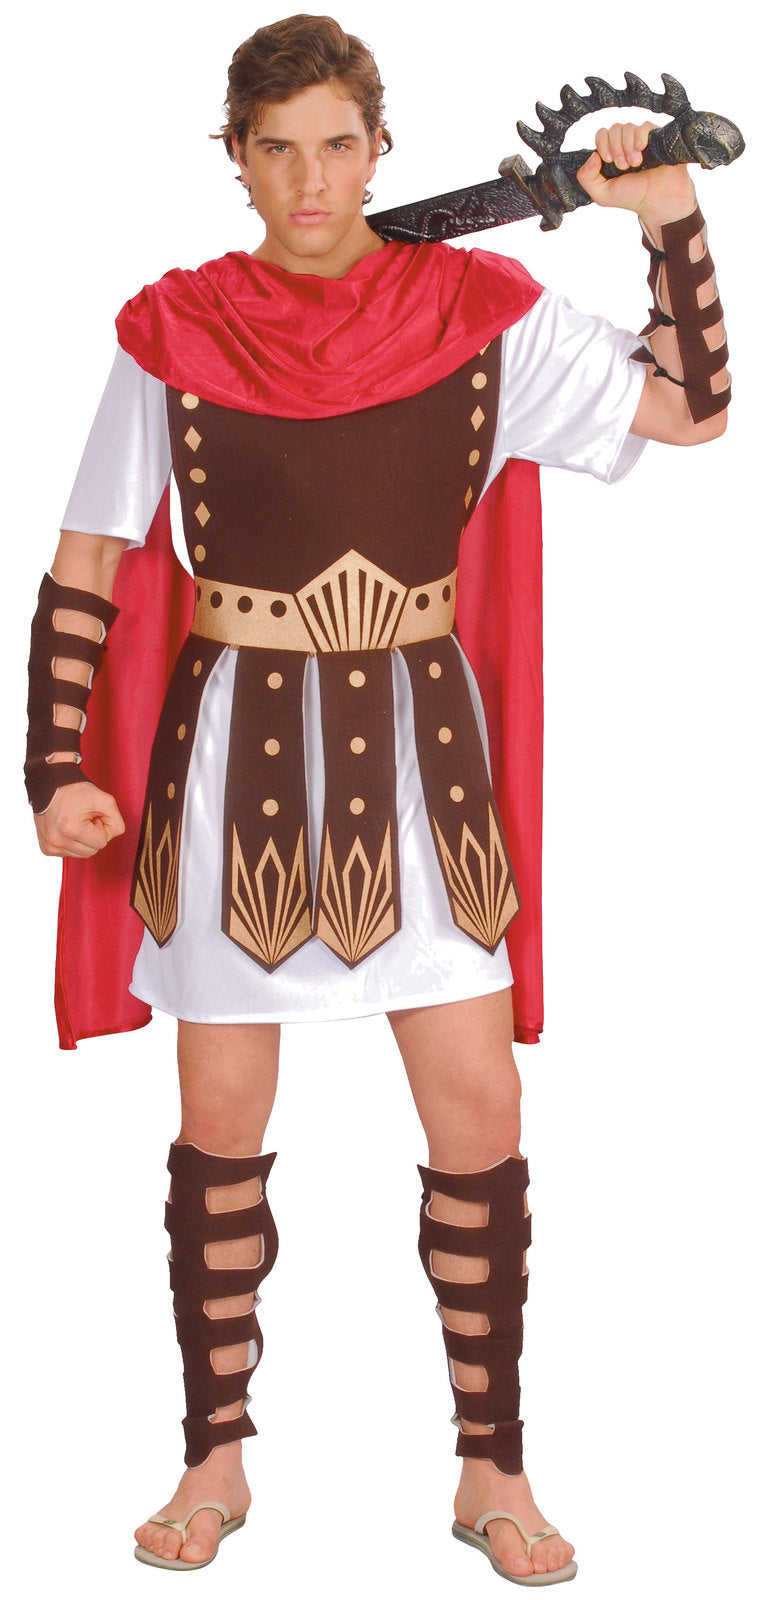 Gladiator, Adult - Size Medium